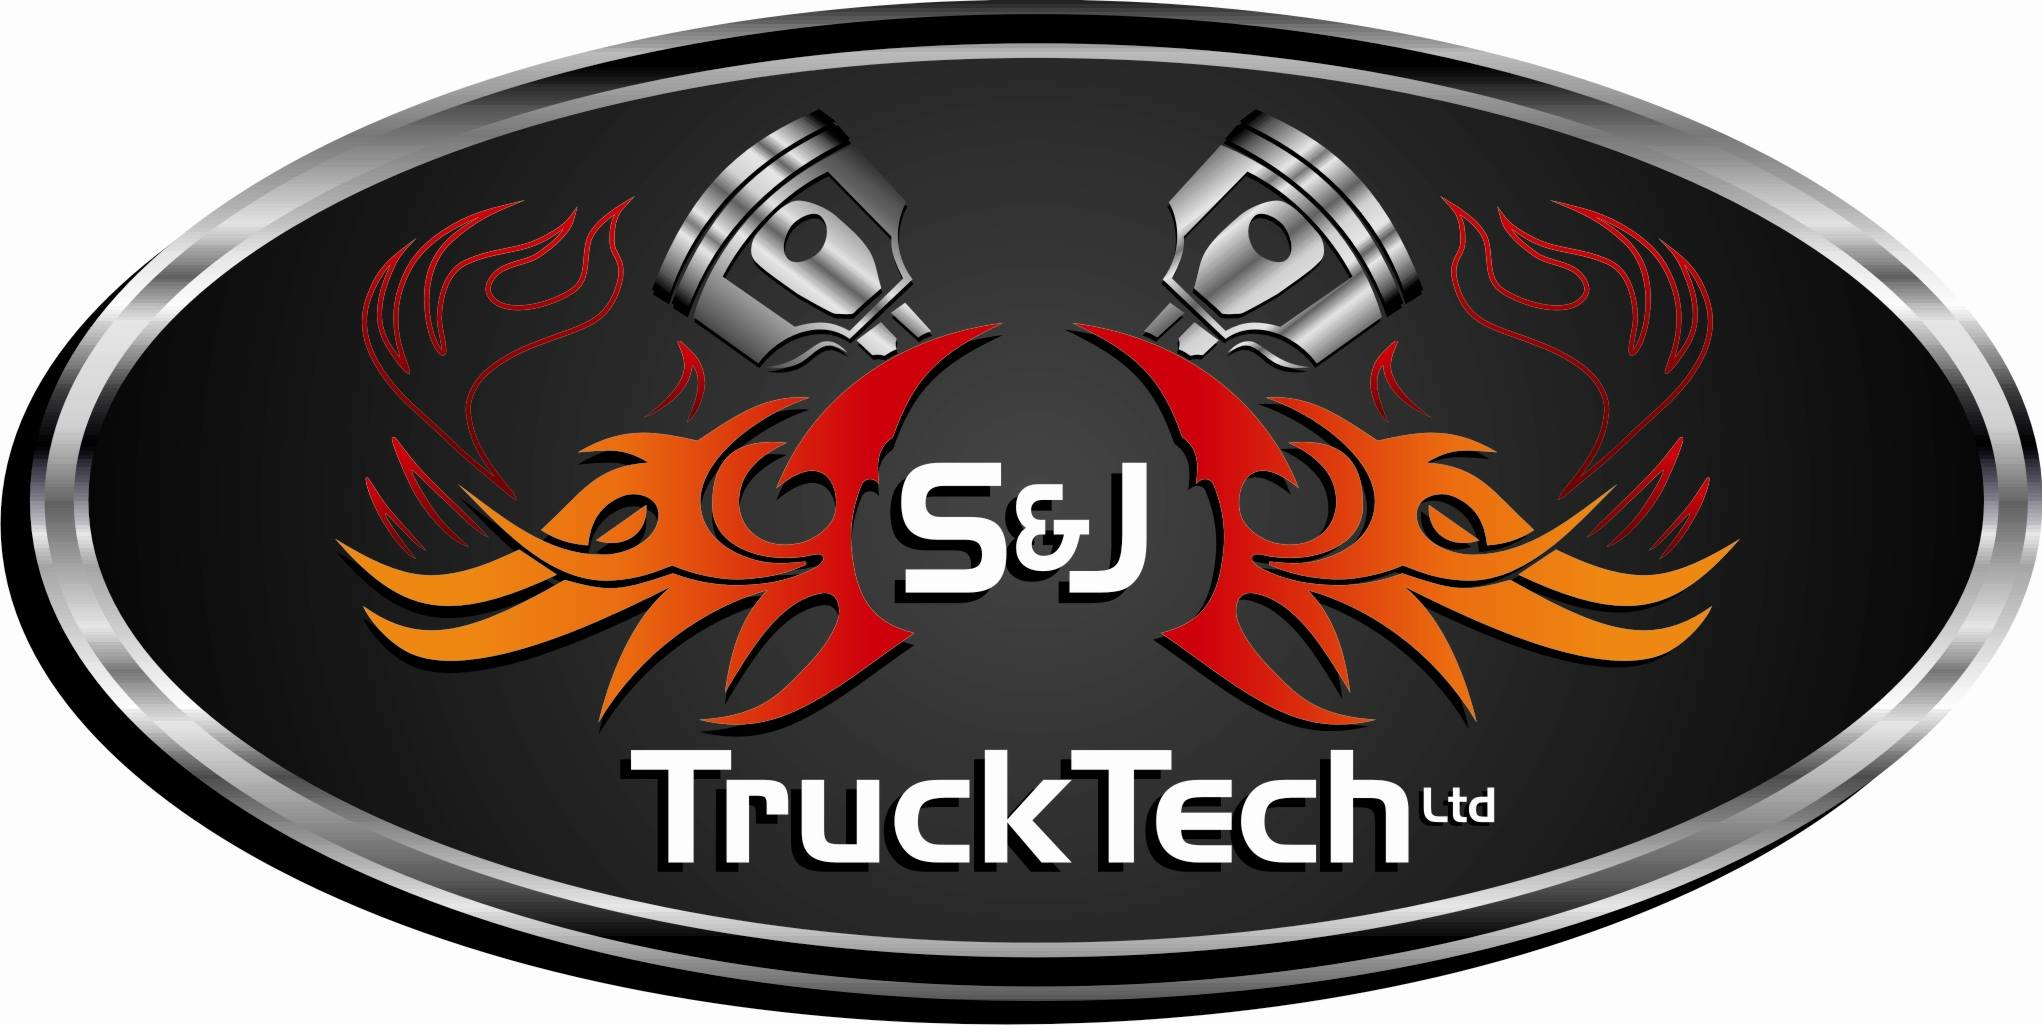 S & J Truck Tech Ltd logo